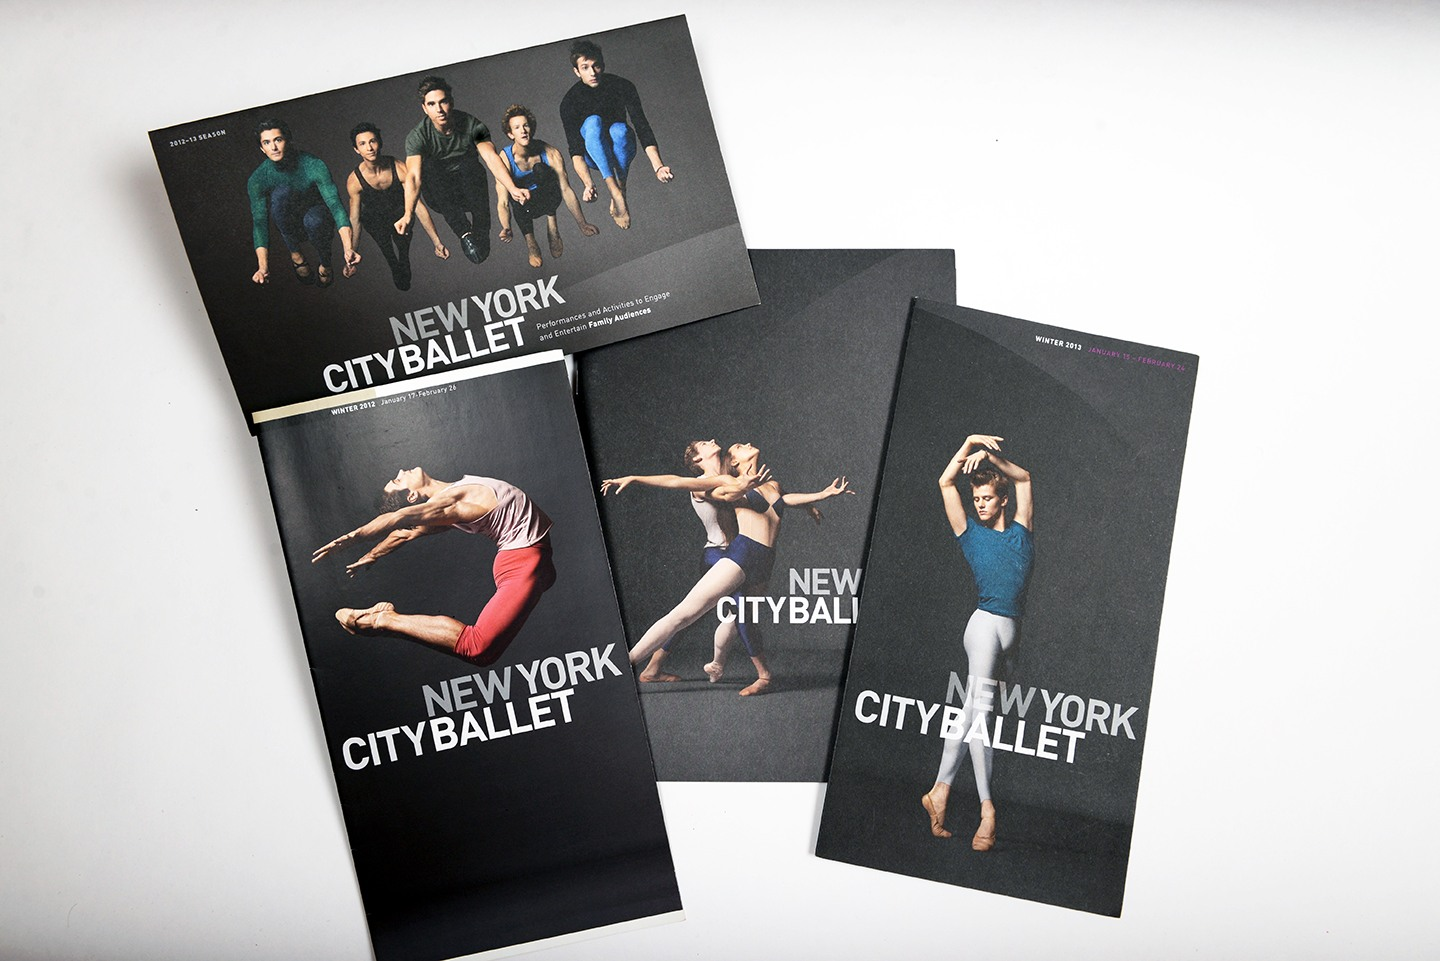 New York City Ballet marketing materials